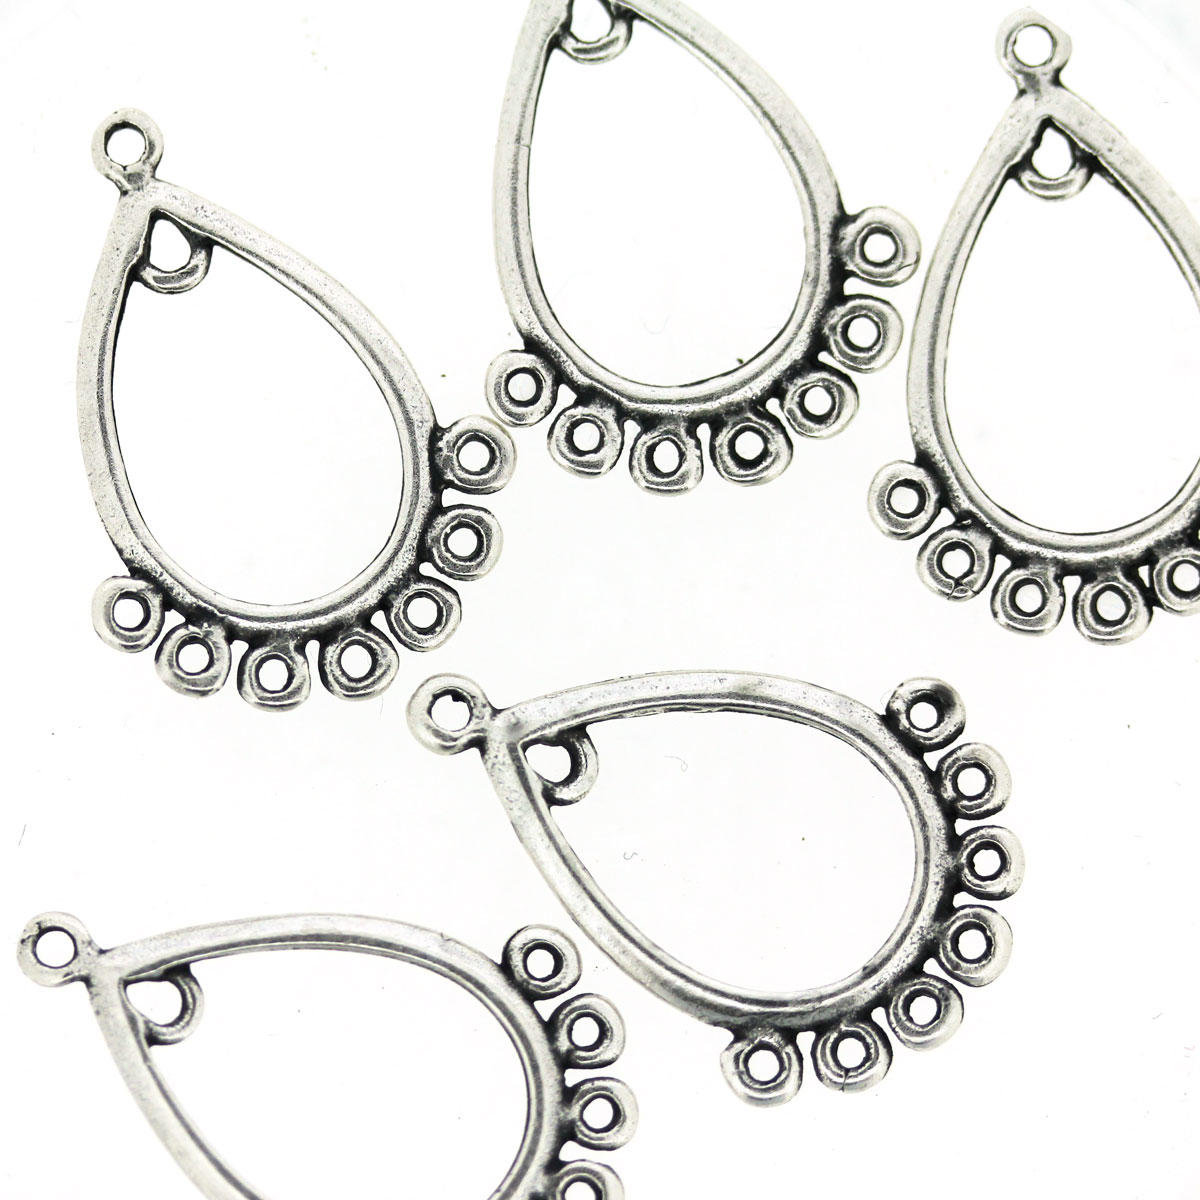 Antique Silver Chandelier Earring Component